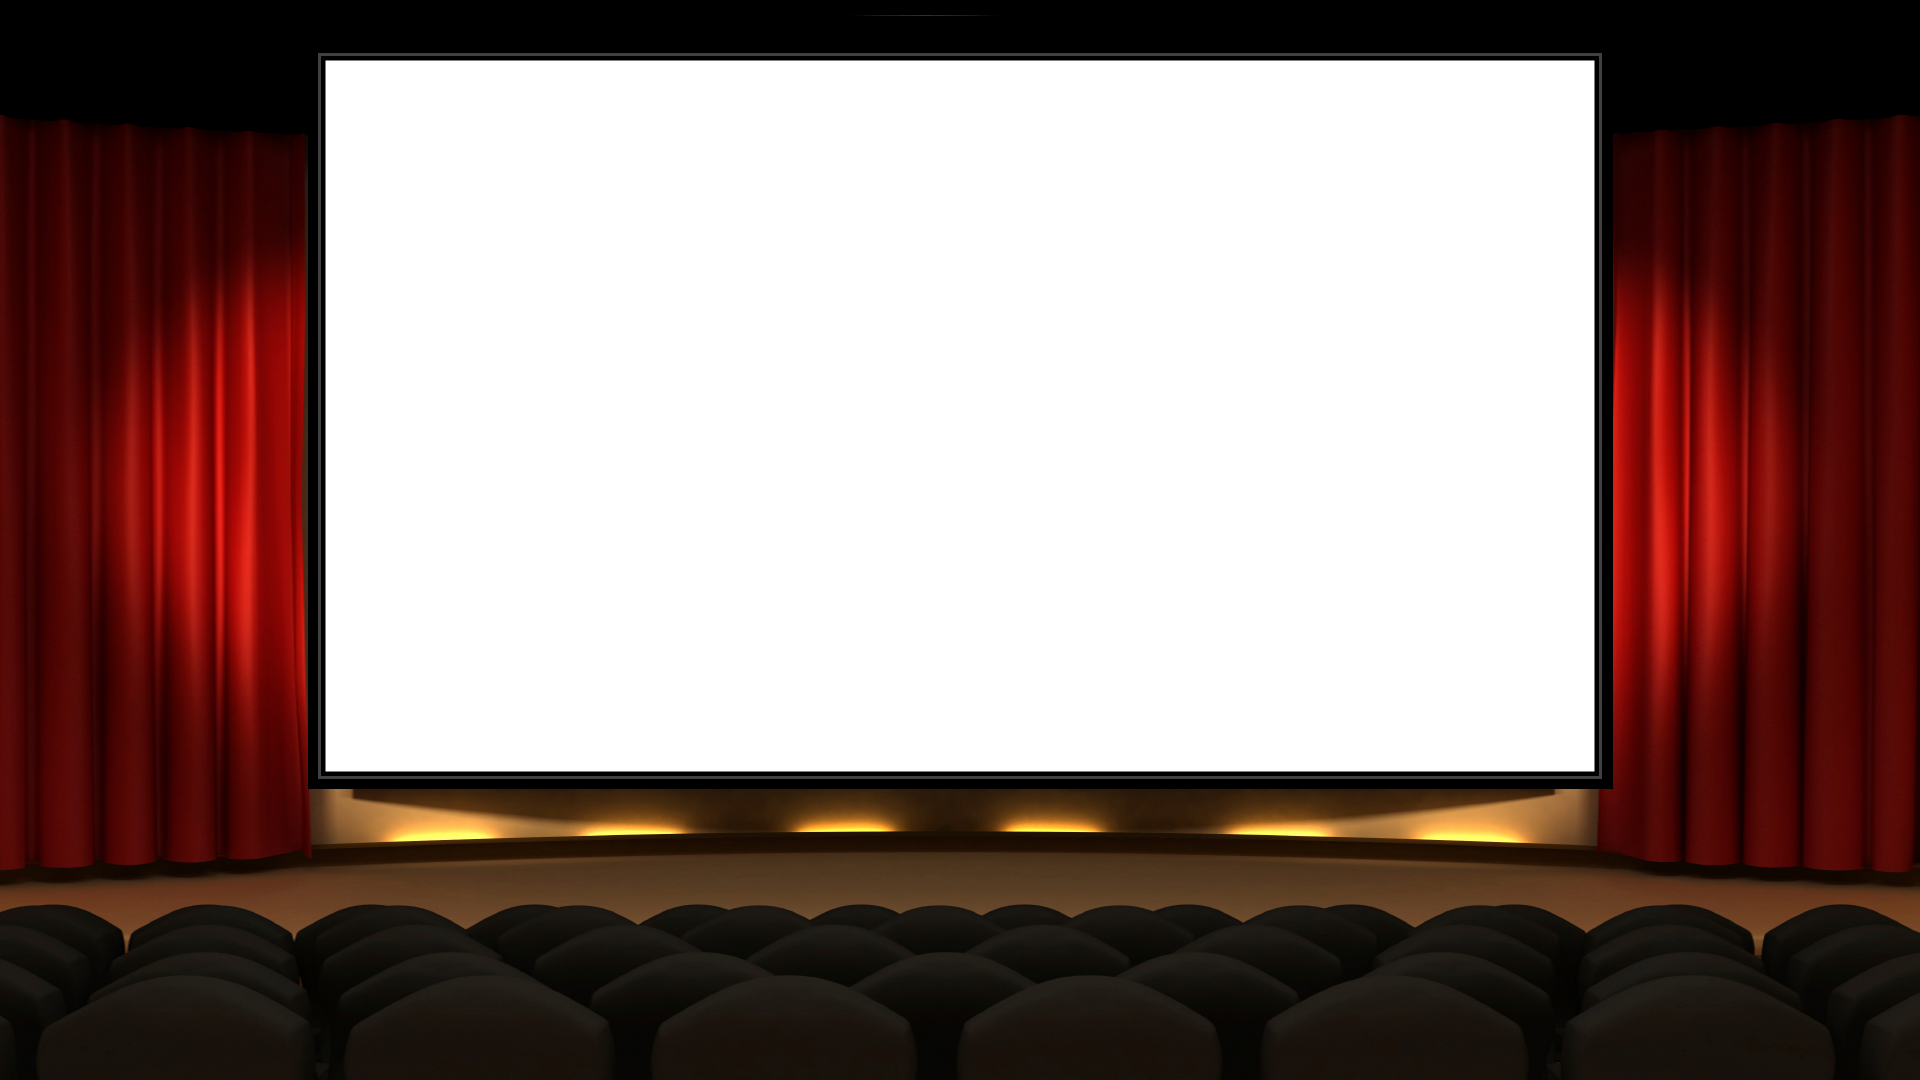 Movie Theatre PNG HD Transparent Movie Theatre HD.PNG Images. | PlusPNG